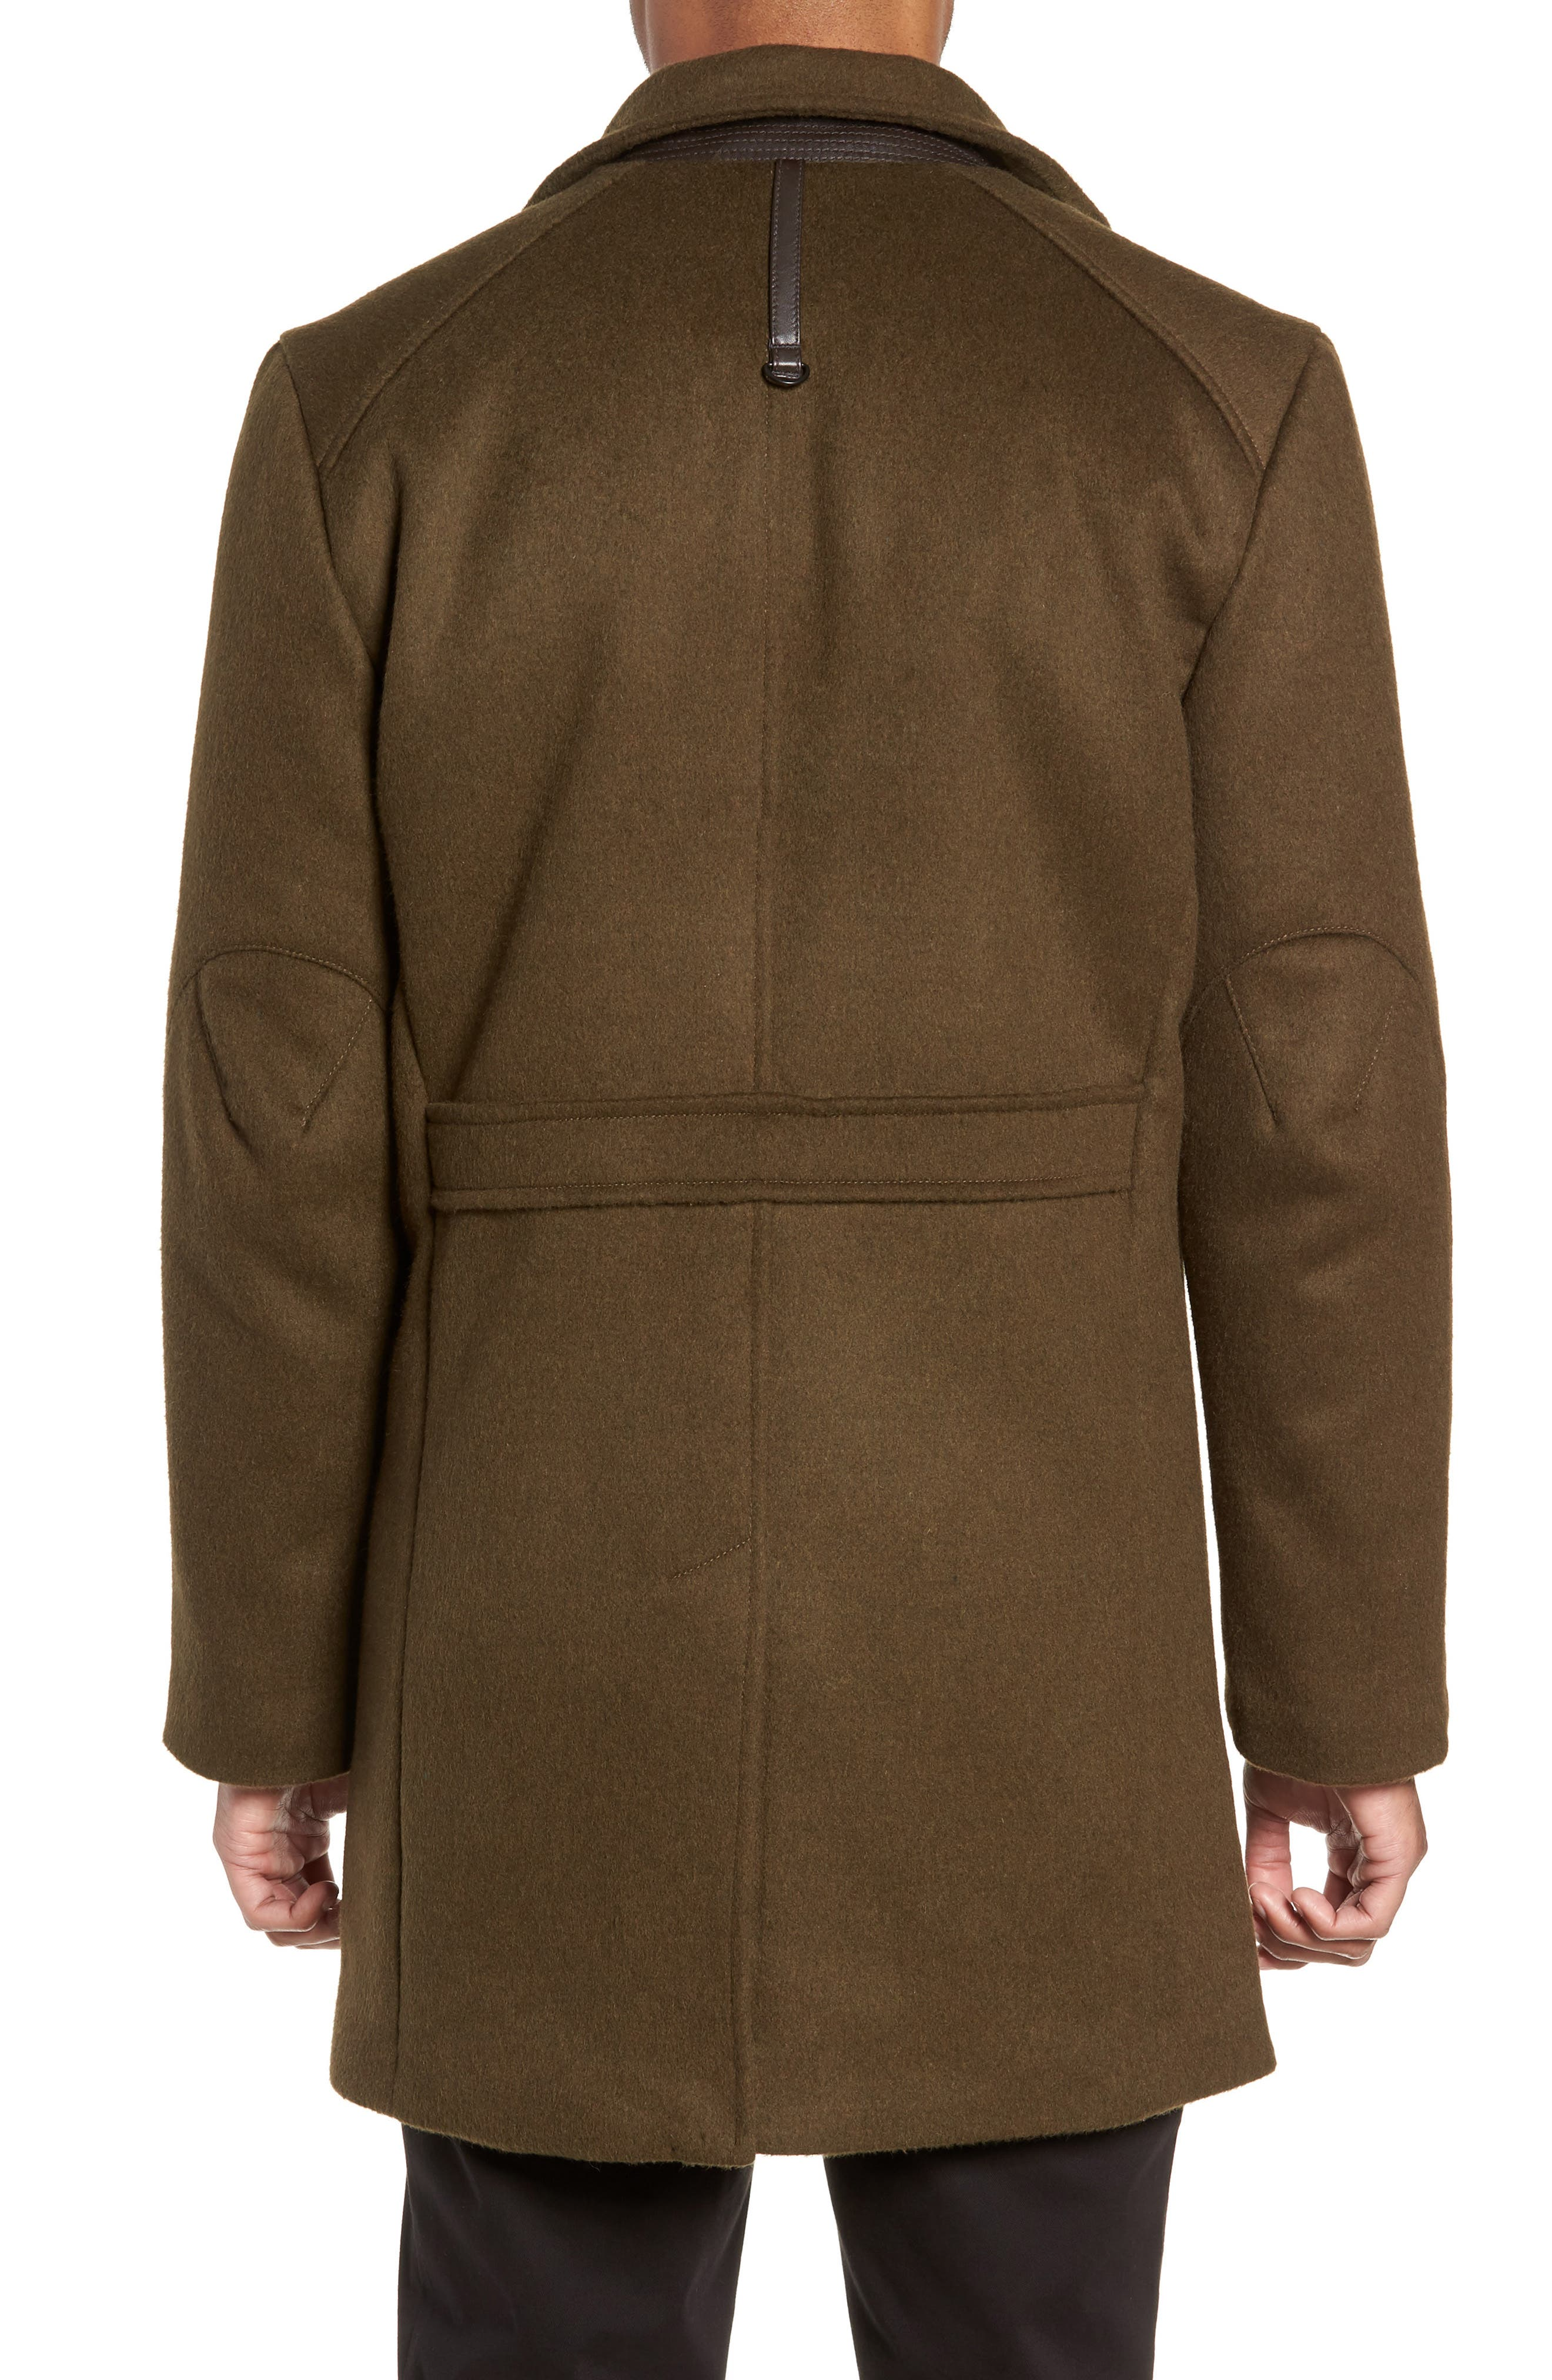 Kilo 3-in-1 Peacoat with Removable Quilted Jacket,                             Alternate thumbnail 3, color,                             OLIVE